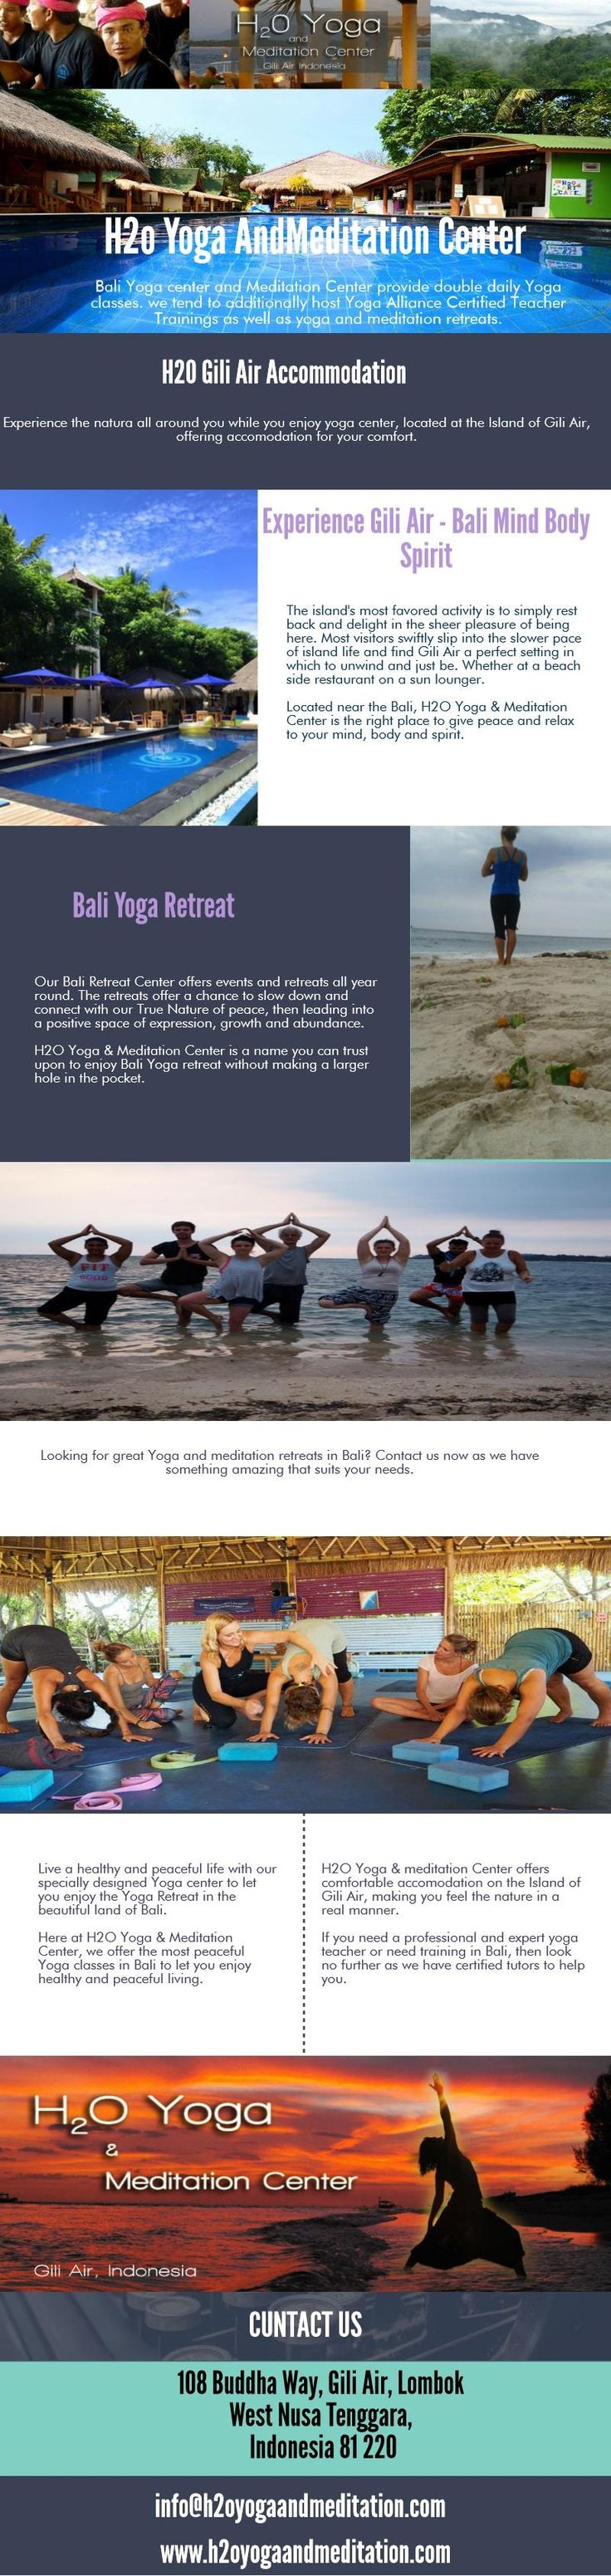 H2O Yoga & meditation Center offers comfortable accomodation on the Island of Gili Air, making you feel the nature in a real manner.